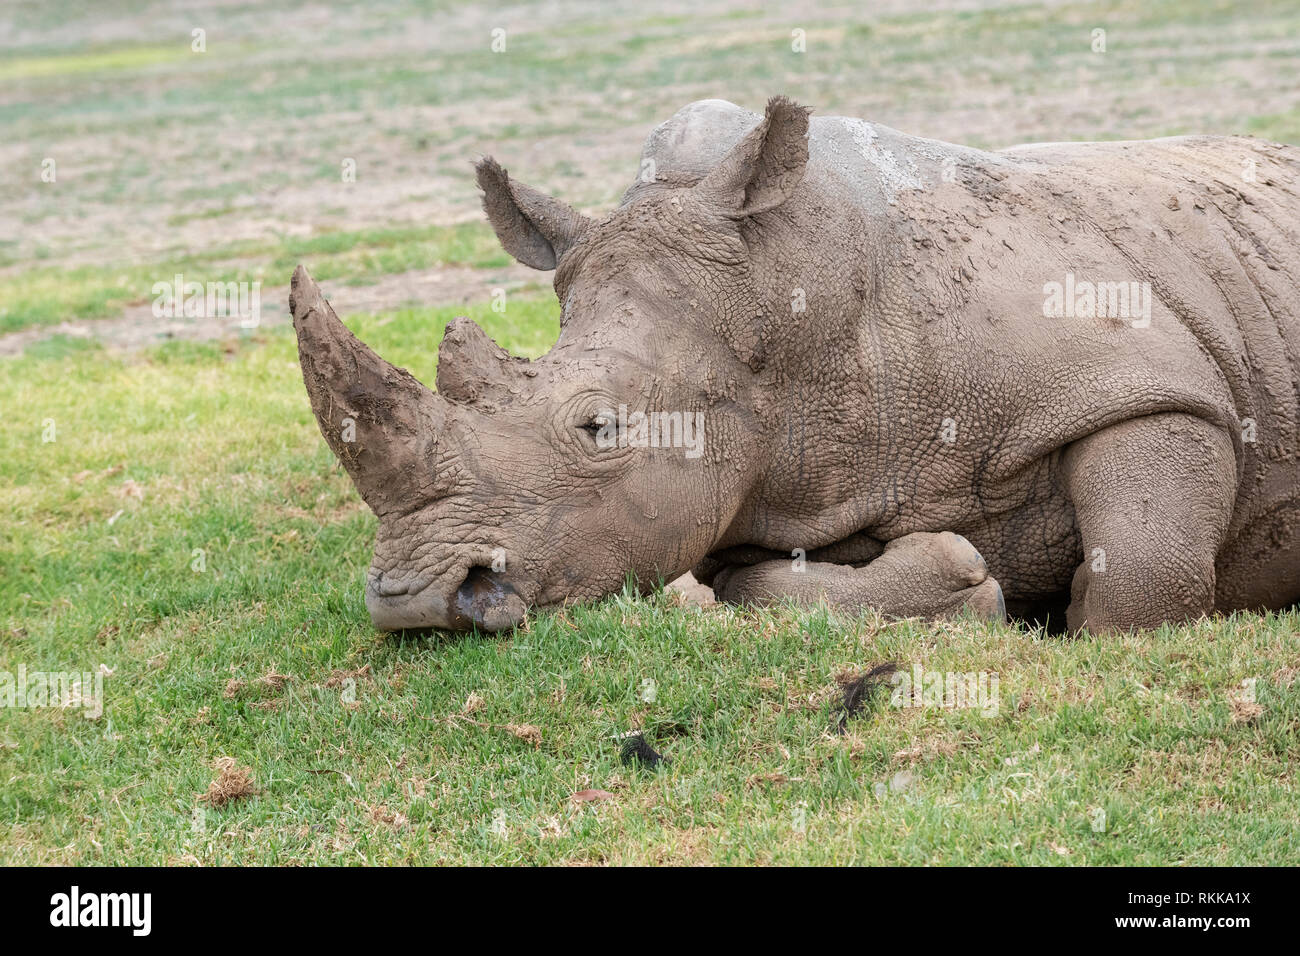 A white rhino resting at the Werribee Open Range Zoo.  The species is considered near threatened. - Stock Image